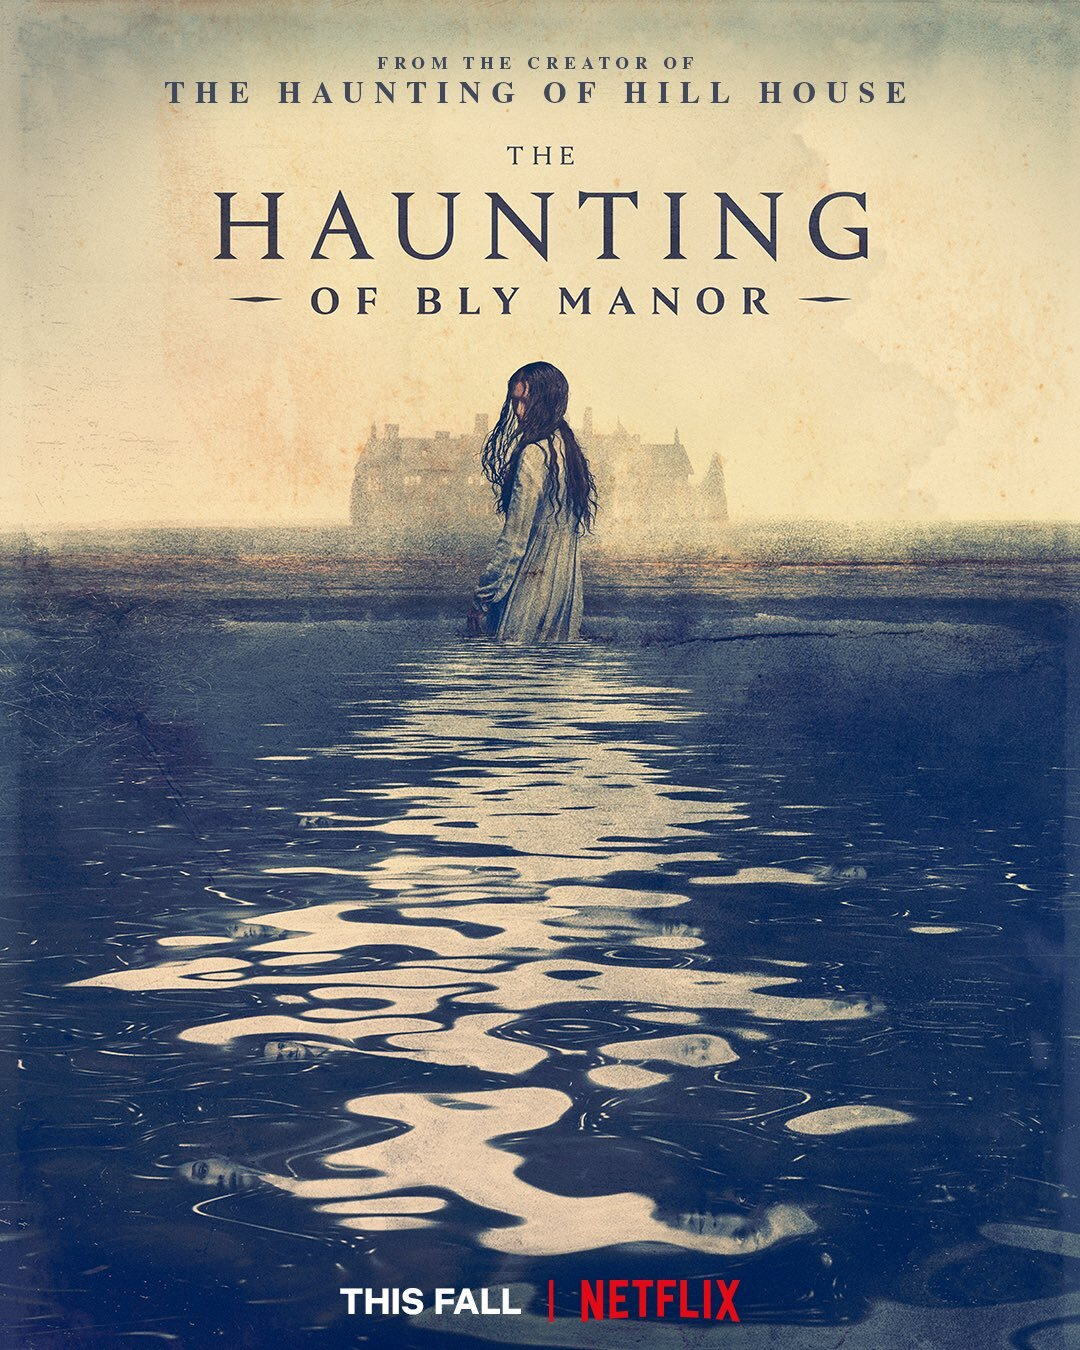 first-poster-and-photos-from-the-haunting-of-bly-manor-which-is-season-2-of-the-haunting-of-hill-house3